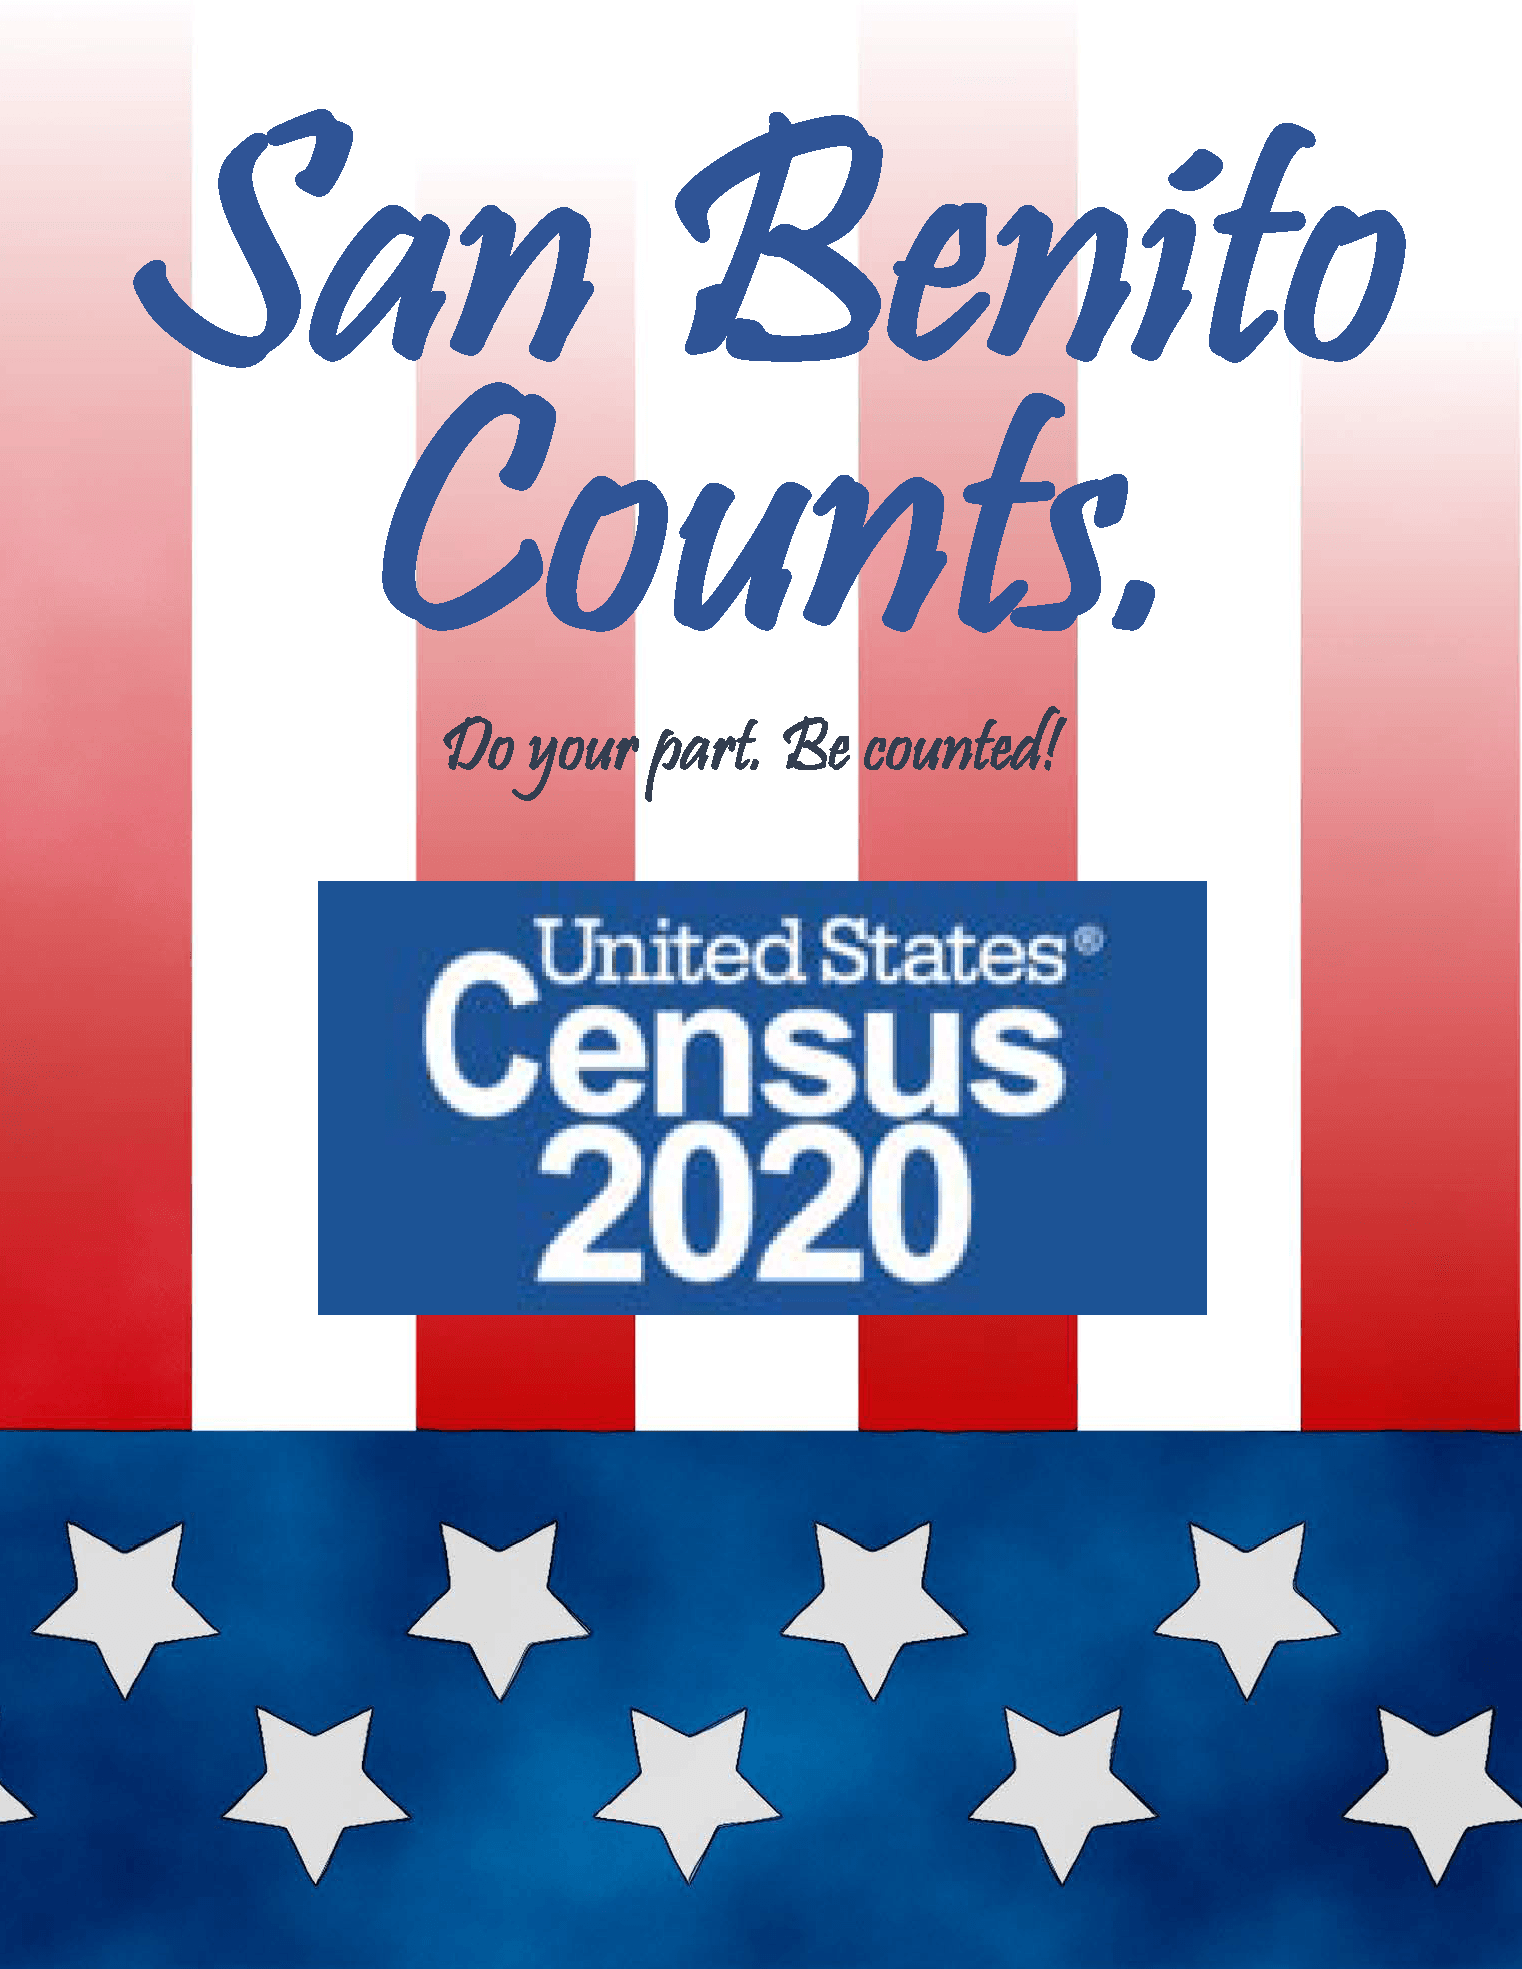 San Benito Counts